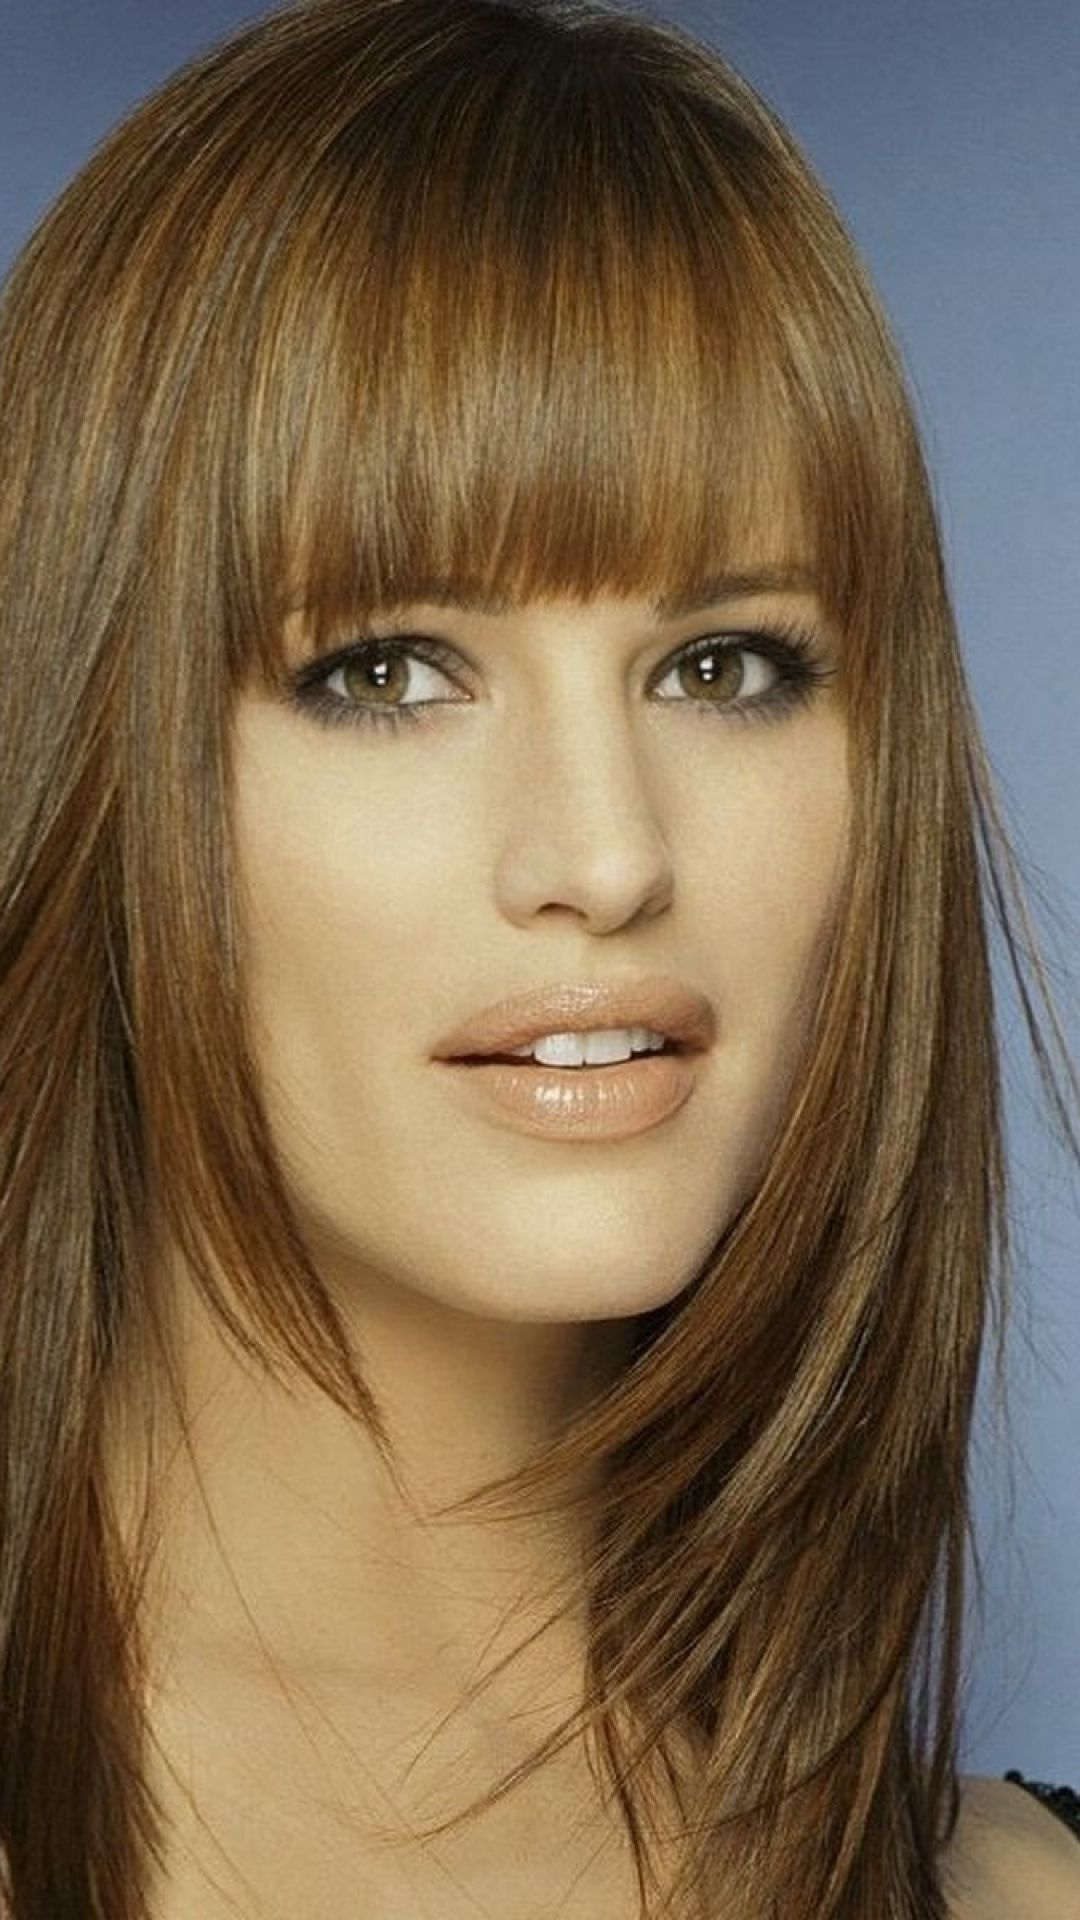 Image Result For Tina Wallpaper Cute Jennifer Garner Wallpaper X